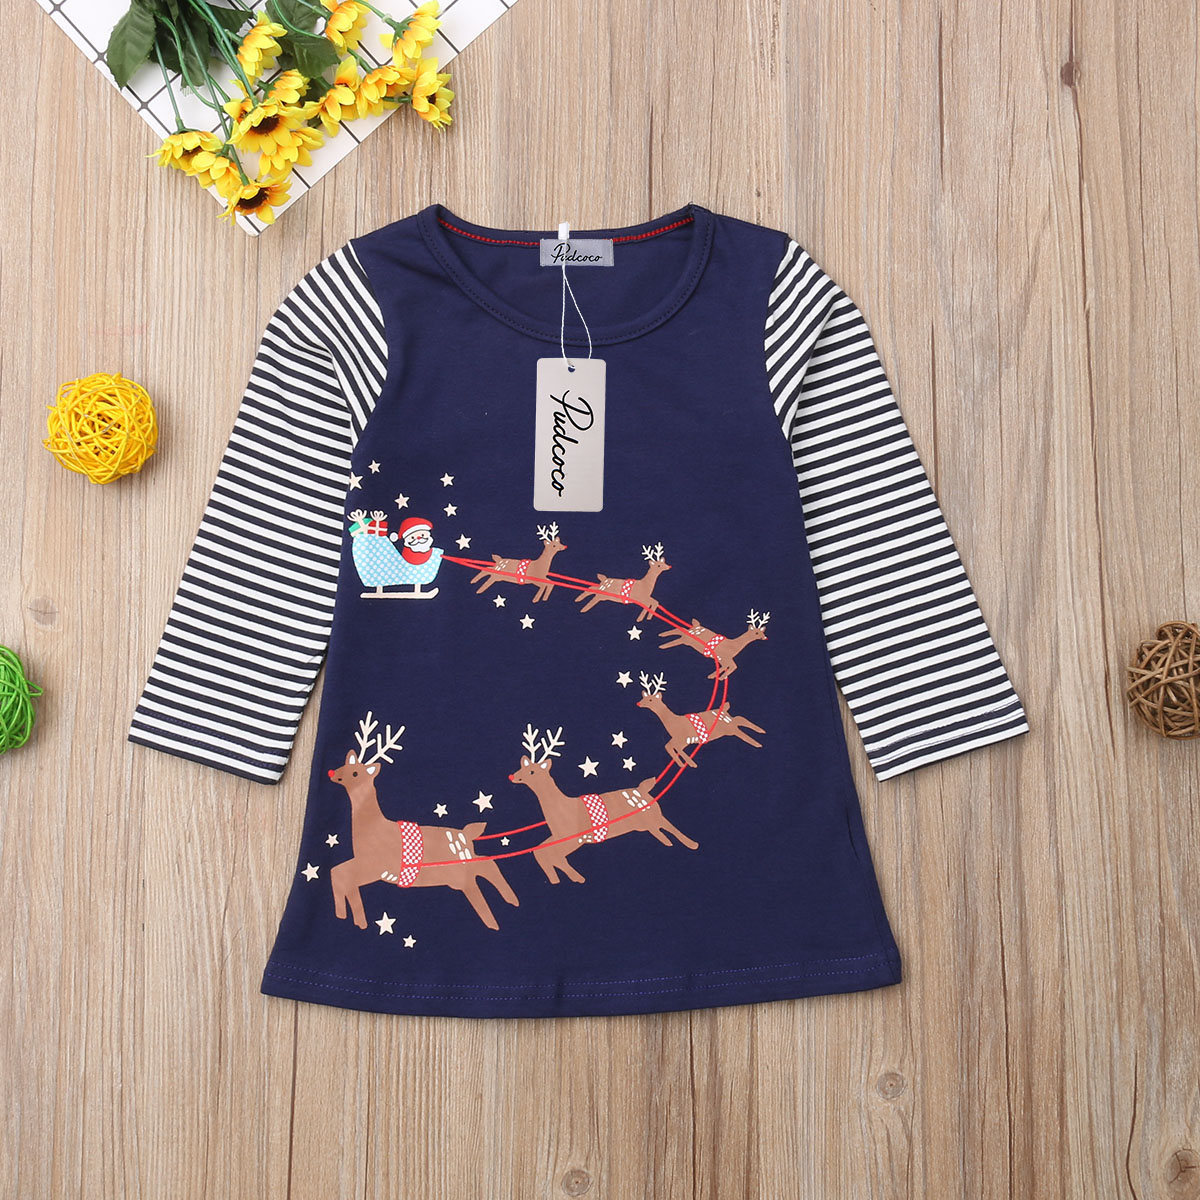 41338ede3 Cotton Kids Baby Princess Girl Dress Long Sleeve Christmas Party ...